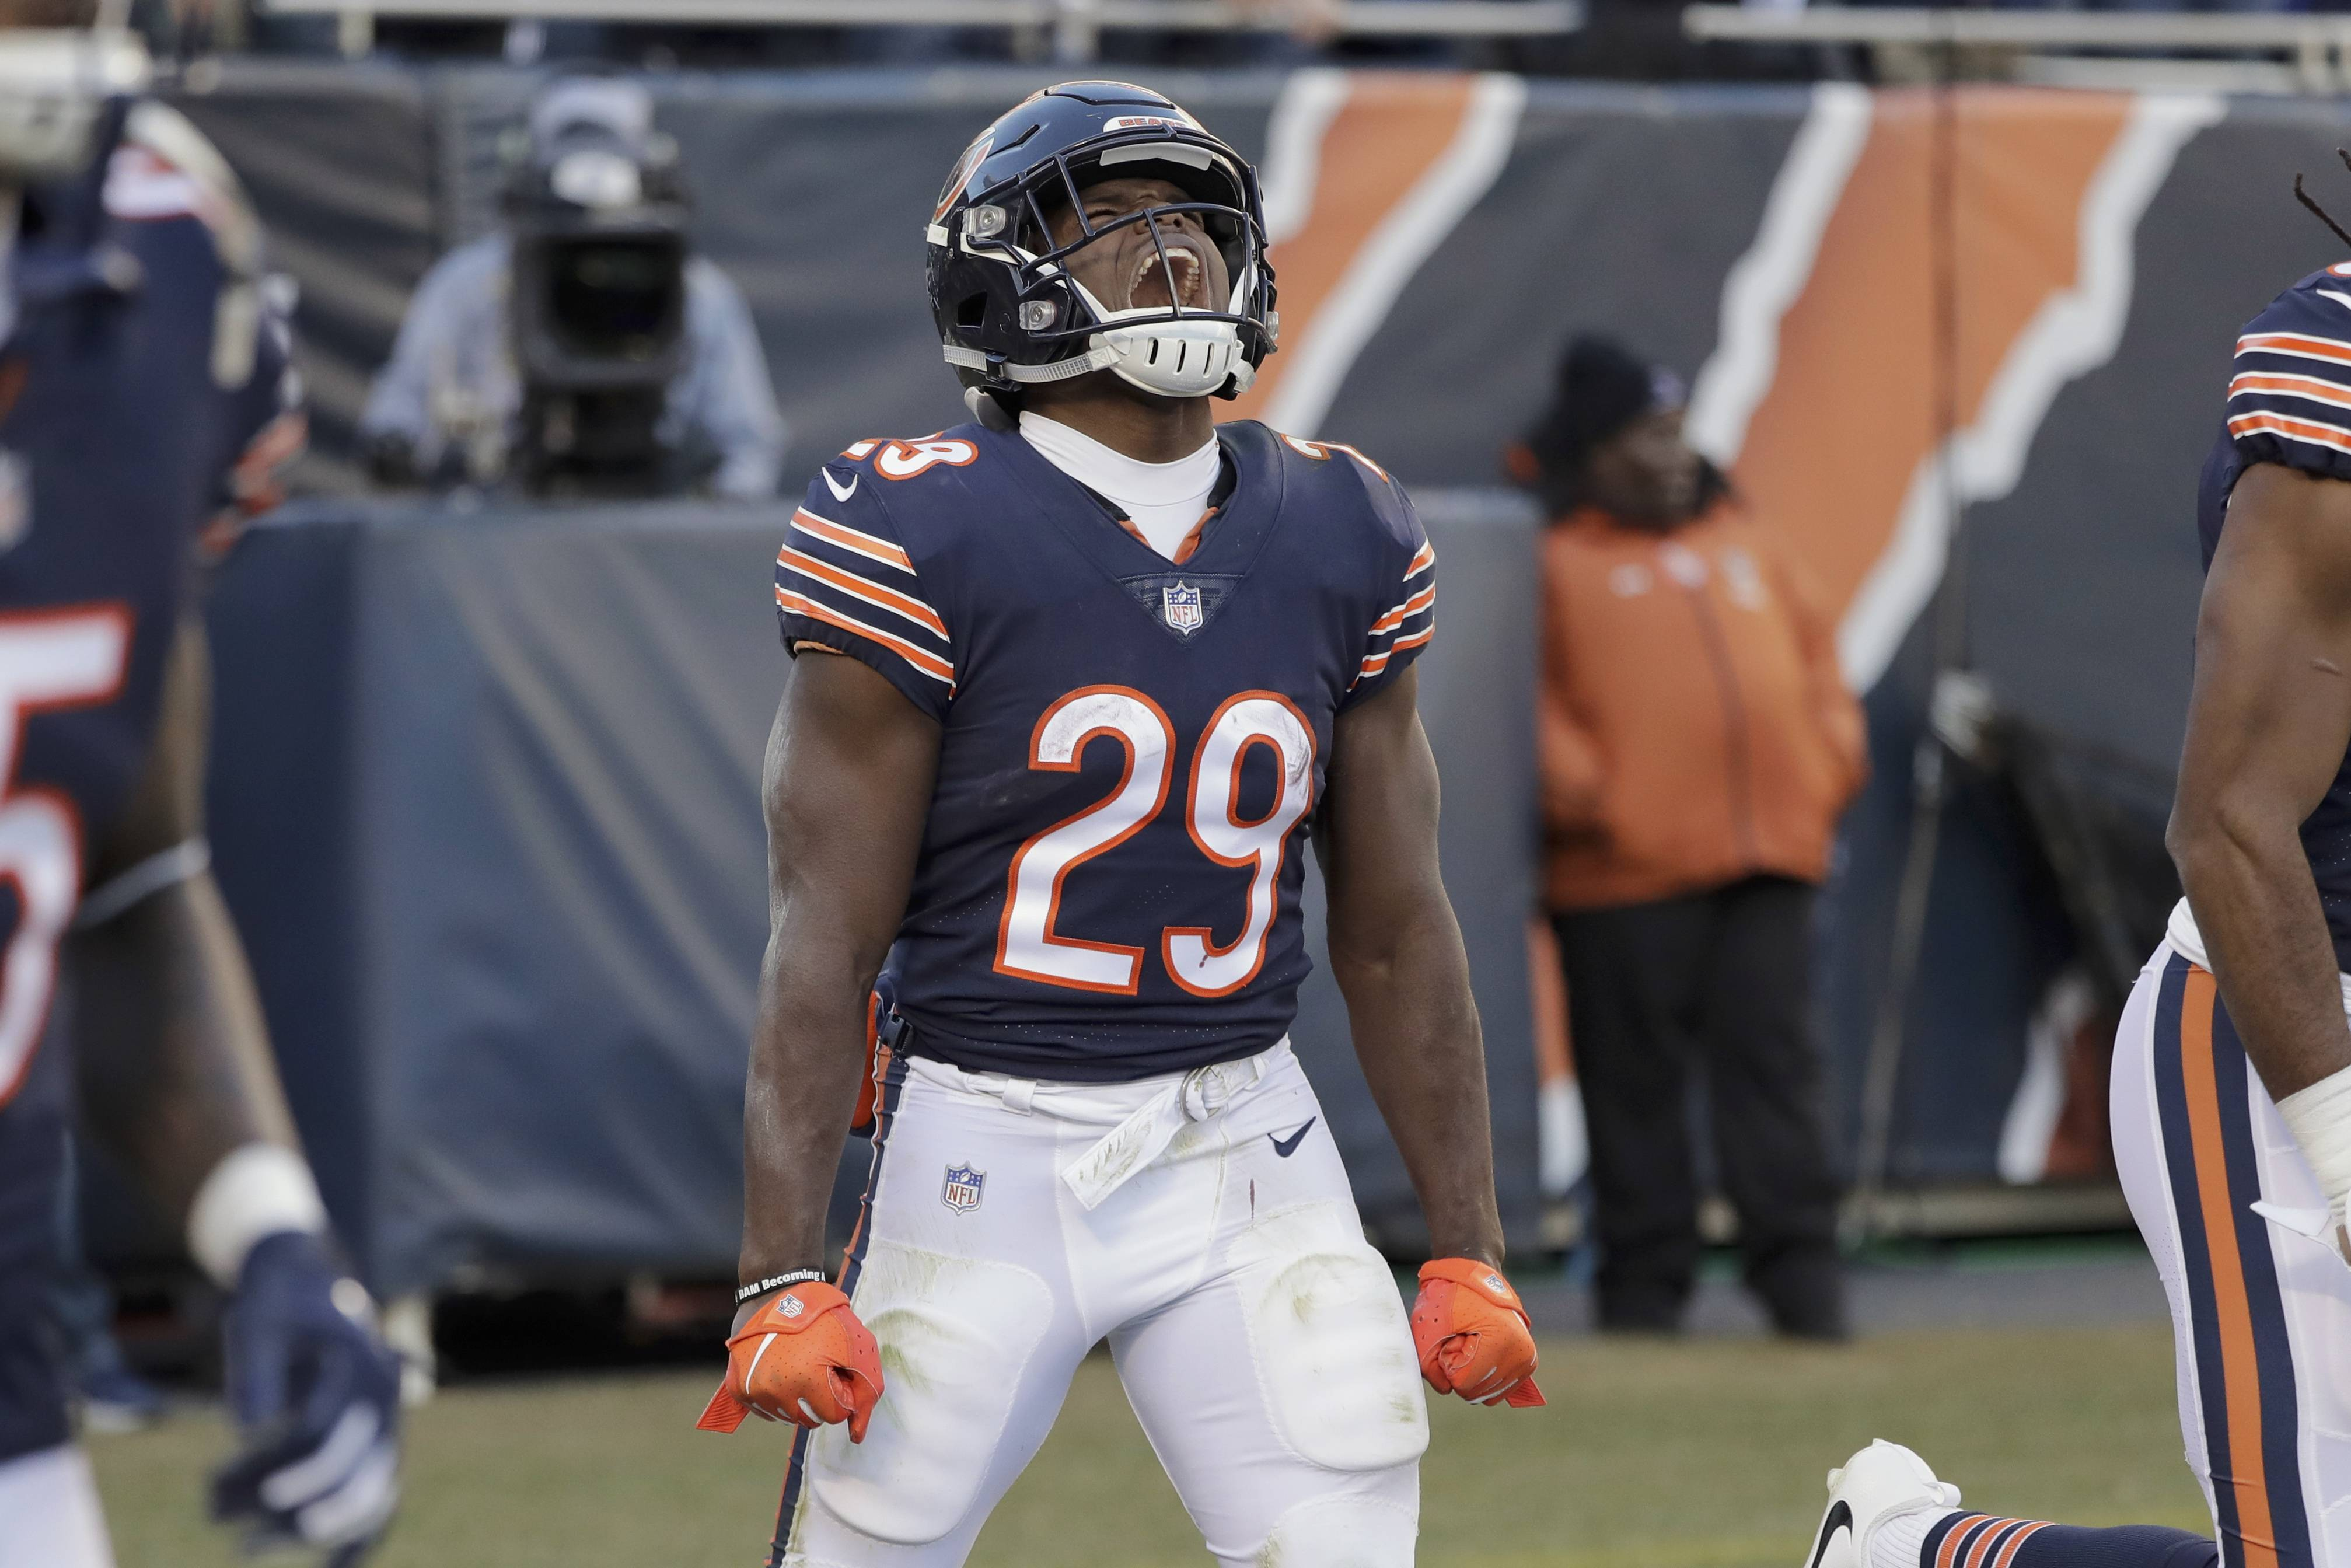 Bears running back Tarik Cohen celebrates during the win over the Packers on Sunday. Cohen was one of five Bears players named to the NFL Pro Bowl on Tuesday.